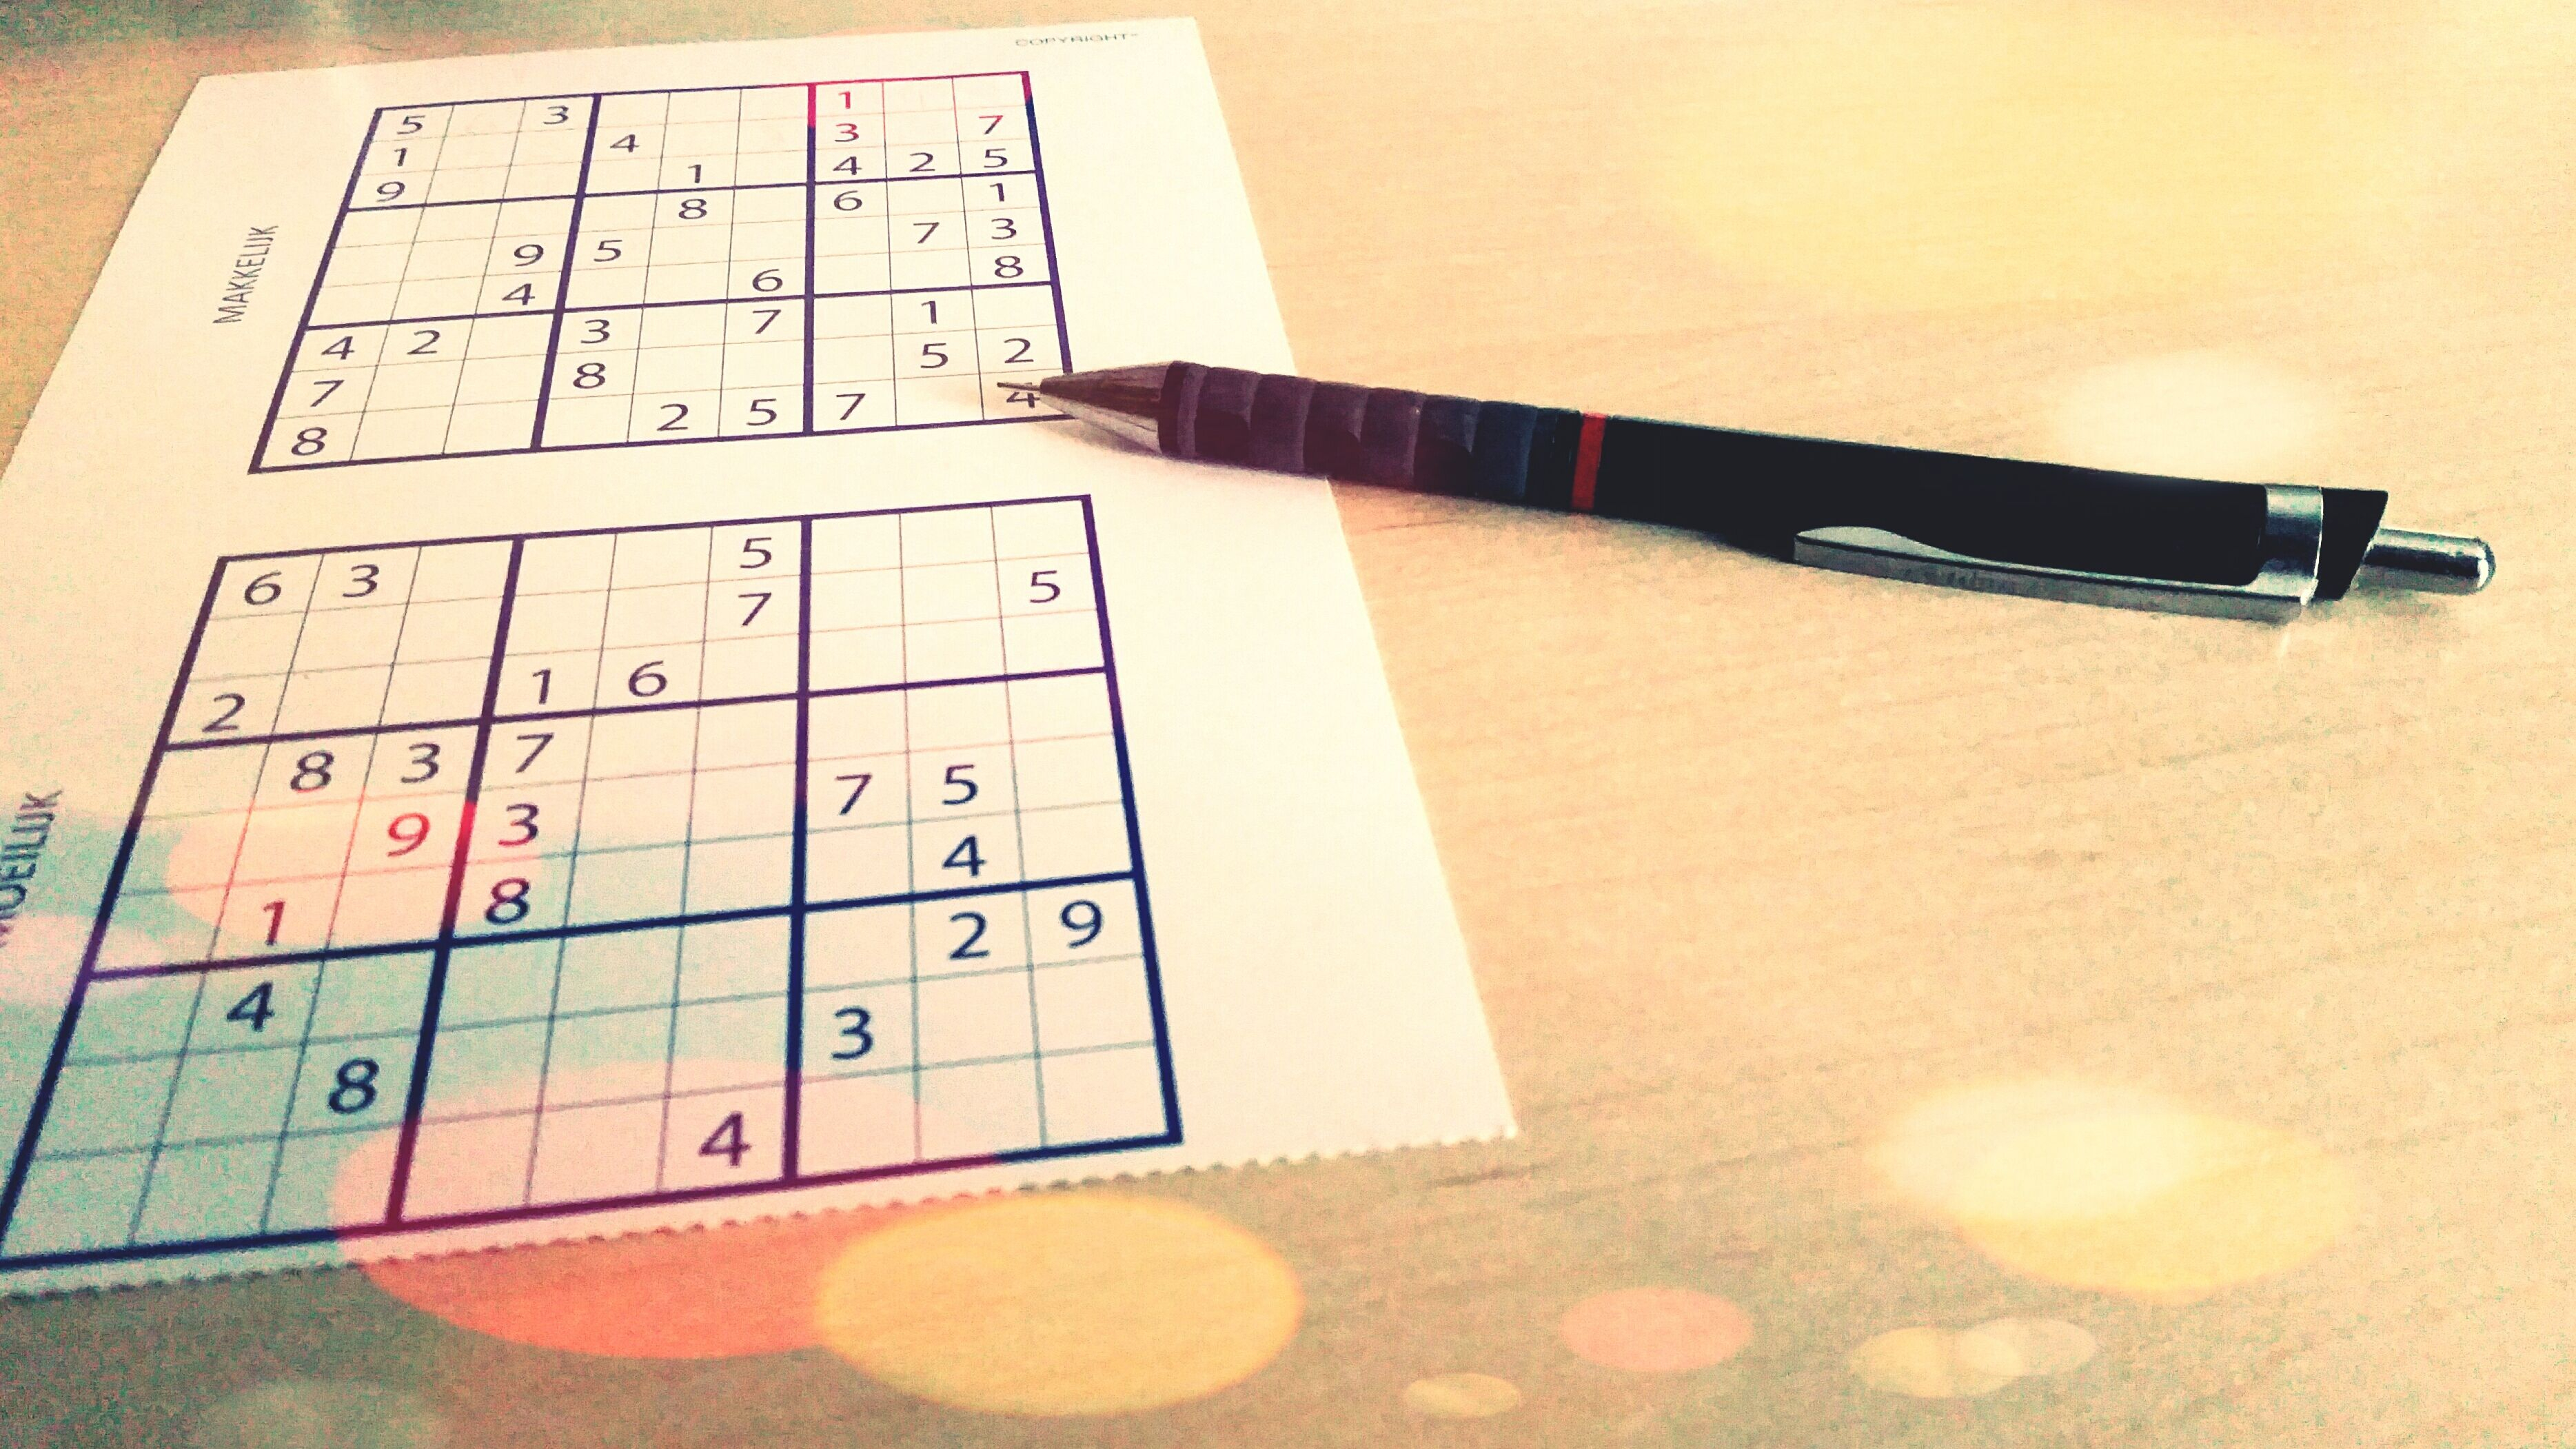 Free Printable Sudoku Puzzles For All Abilities - Printable Sudoku Puzzles Easy #4